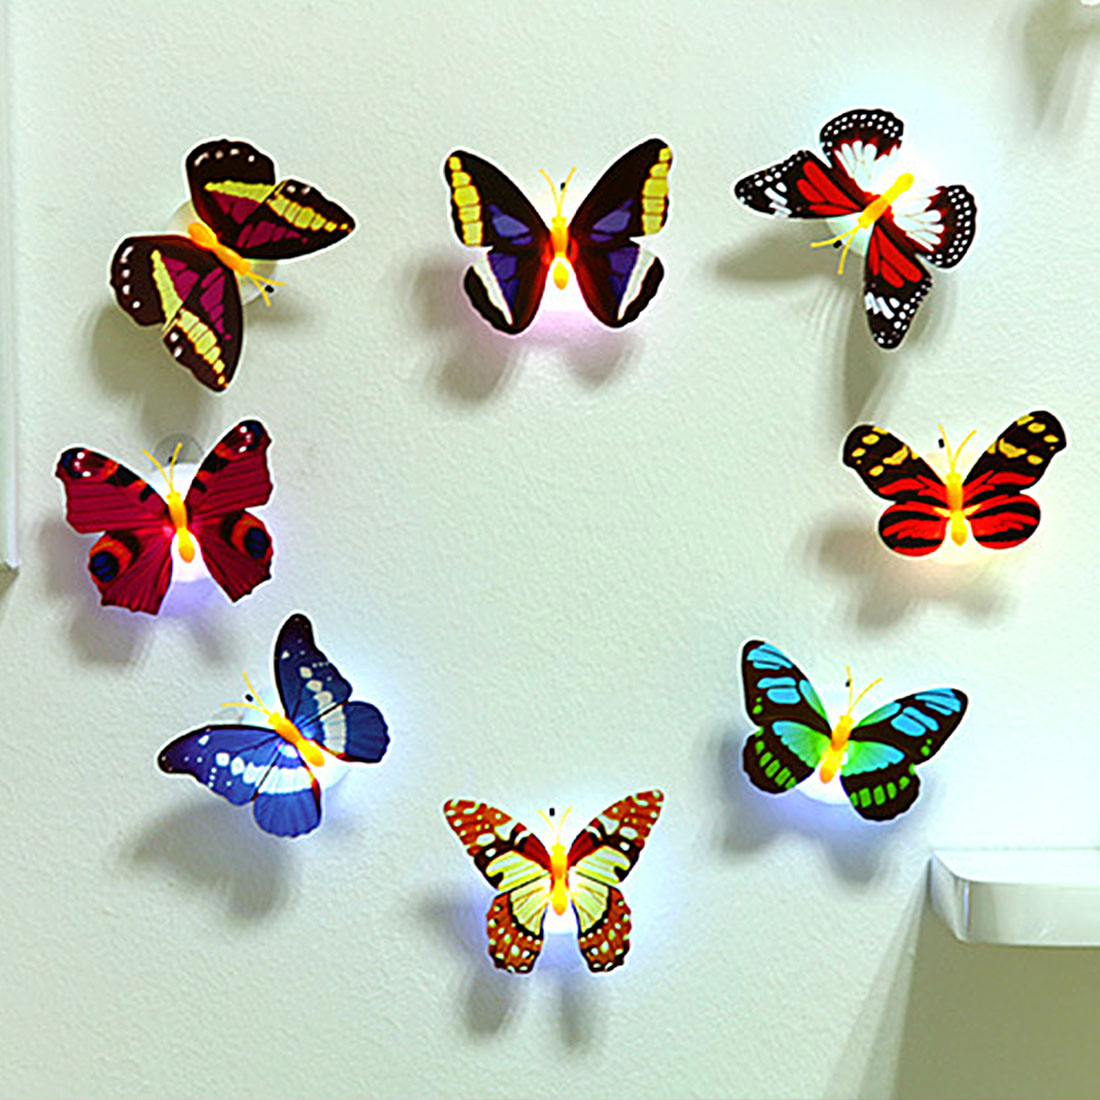 Hot Light Night Atmosphere Lamp With Different Color Butterfly Indoor Light With Suction Pad Lighting Accessories/Randowcolor